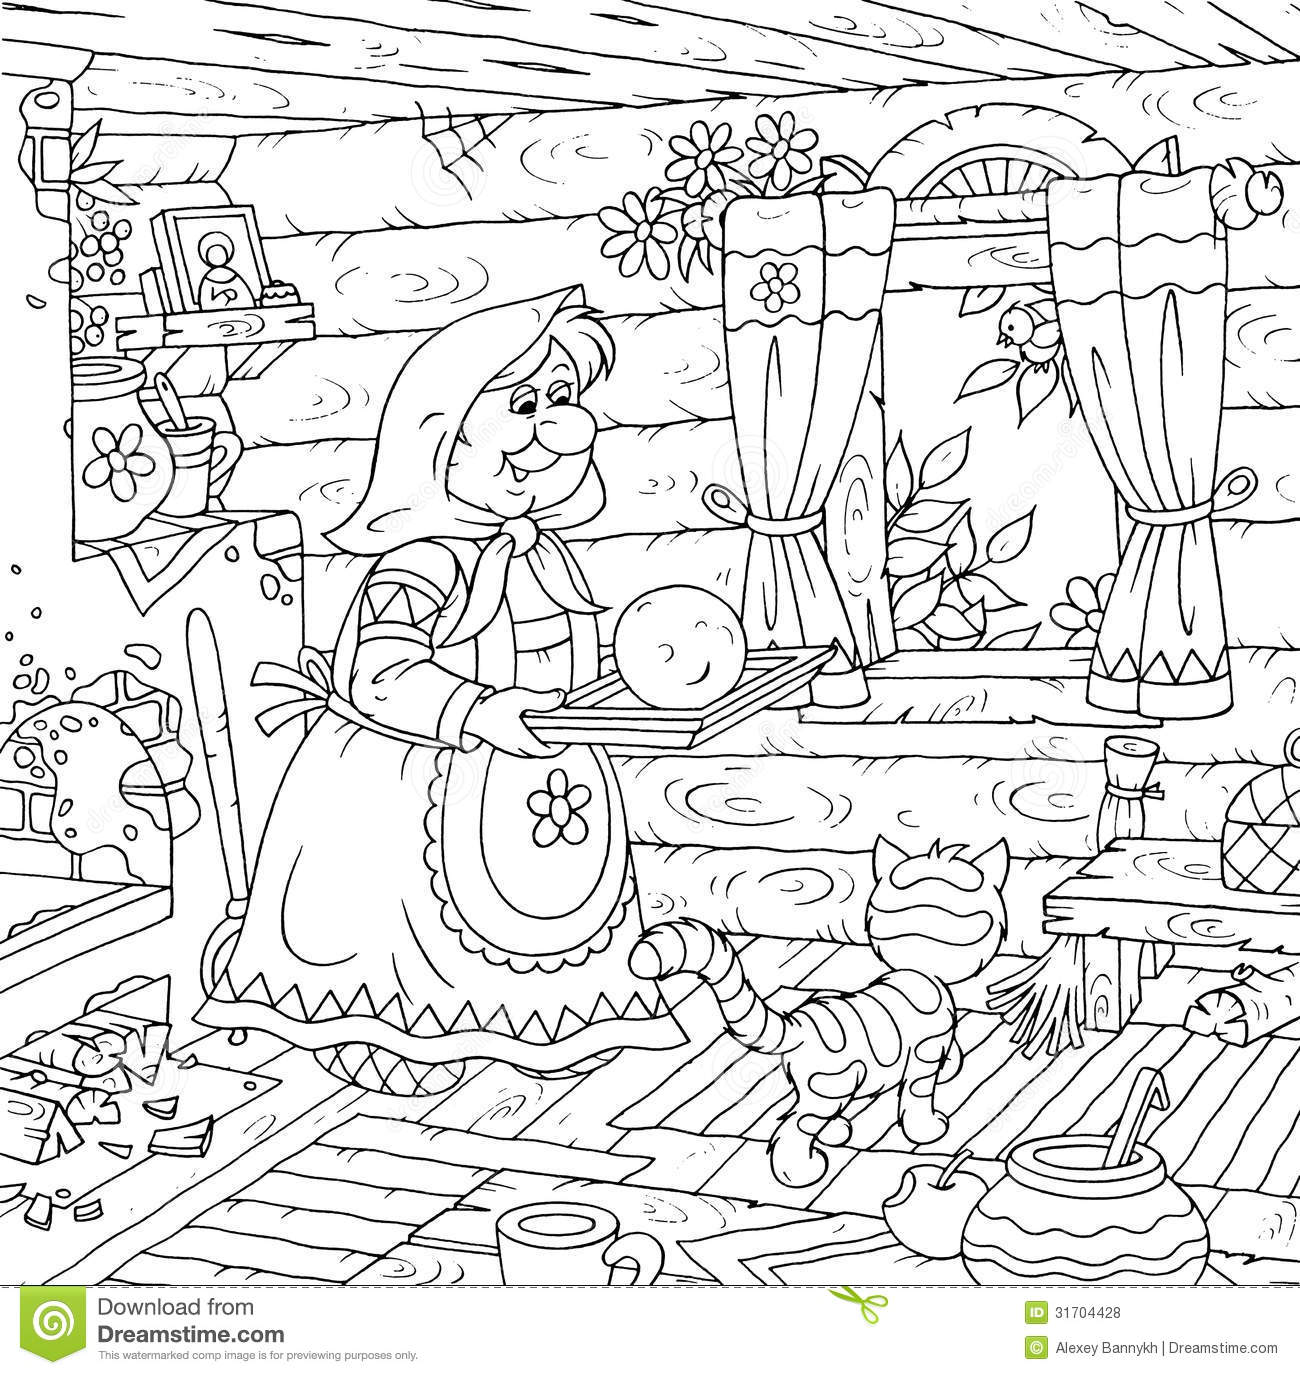 cher coloring pages - photo#19